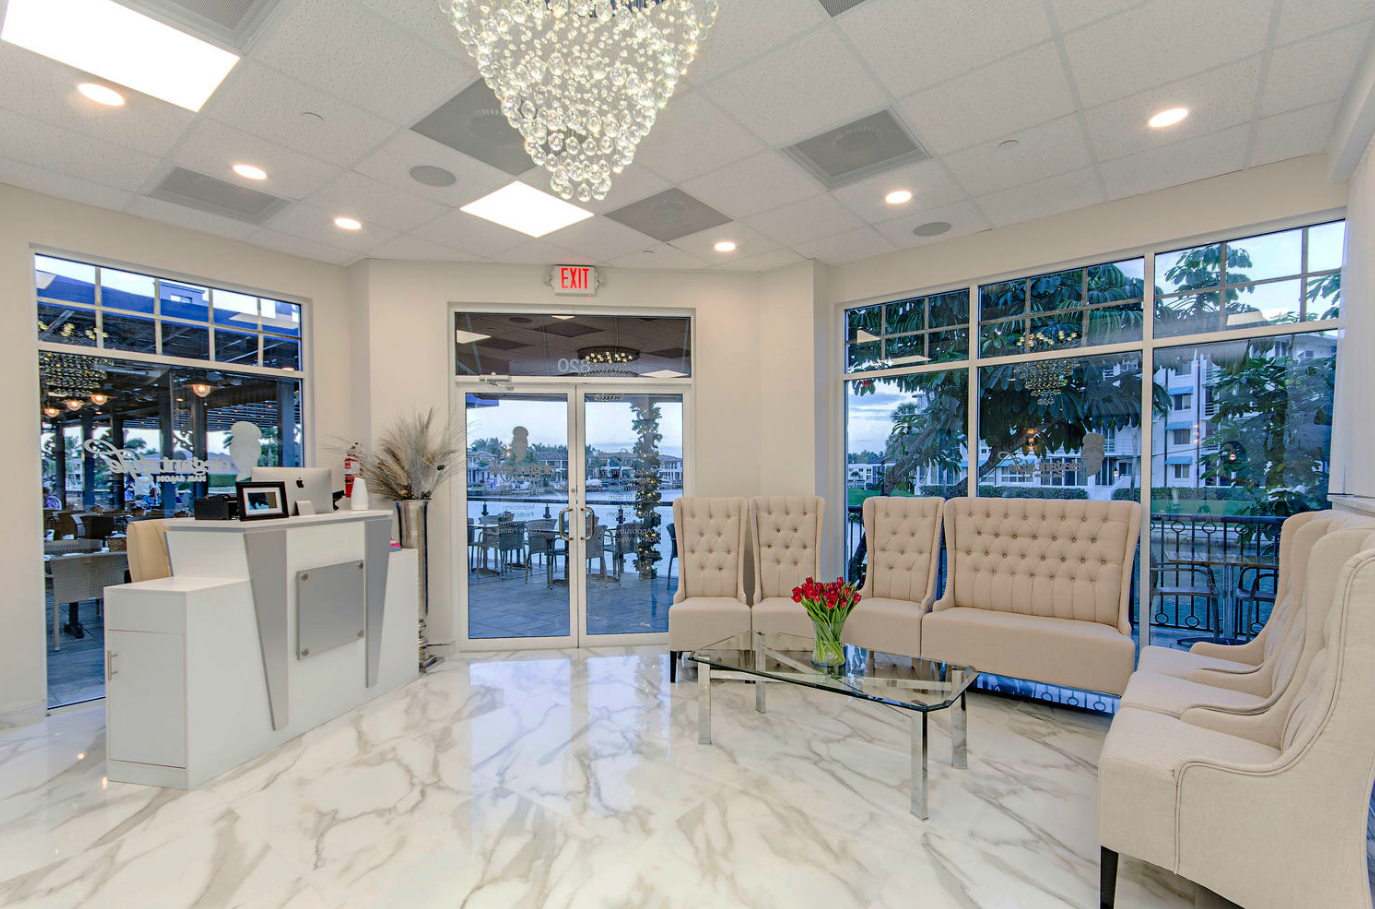 Naples Nail Shops, Naples nails, Naples nail salon, nail shops in Naples FL, Naples Florida nail salons, nail salon Naples